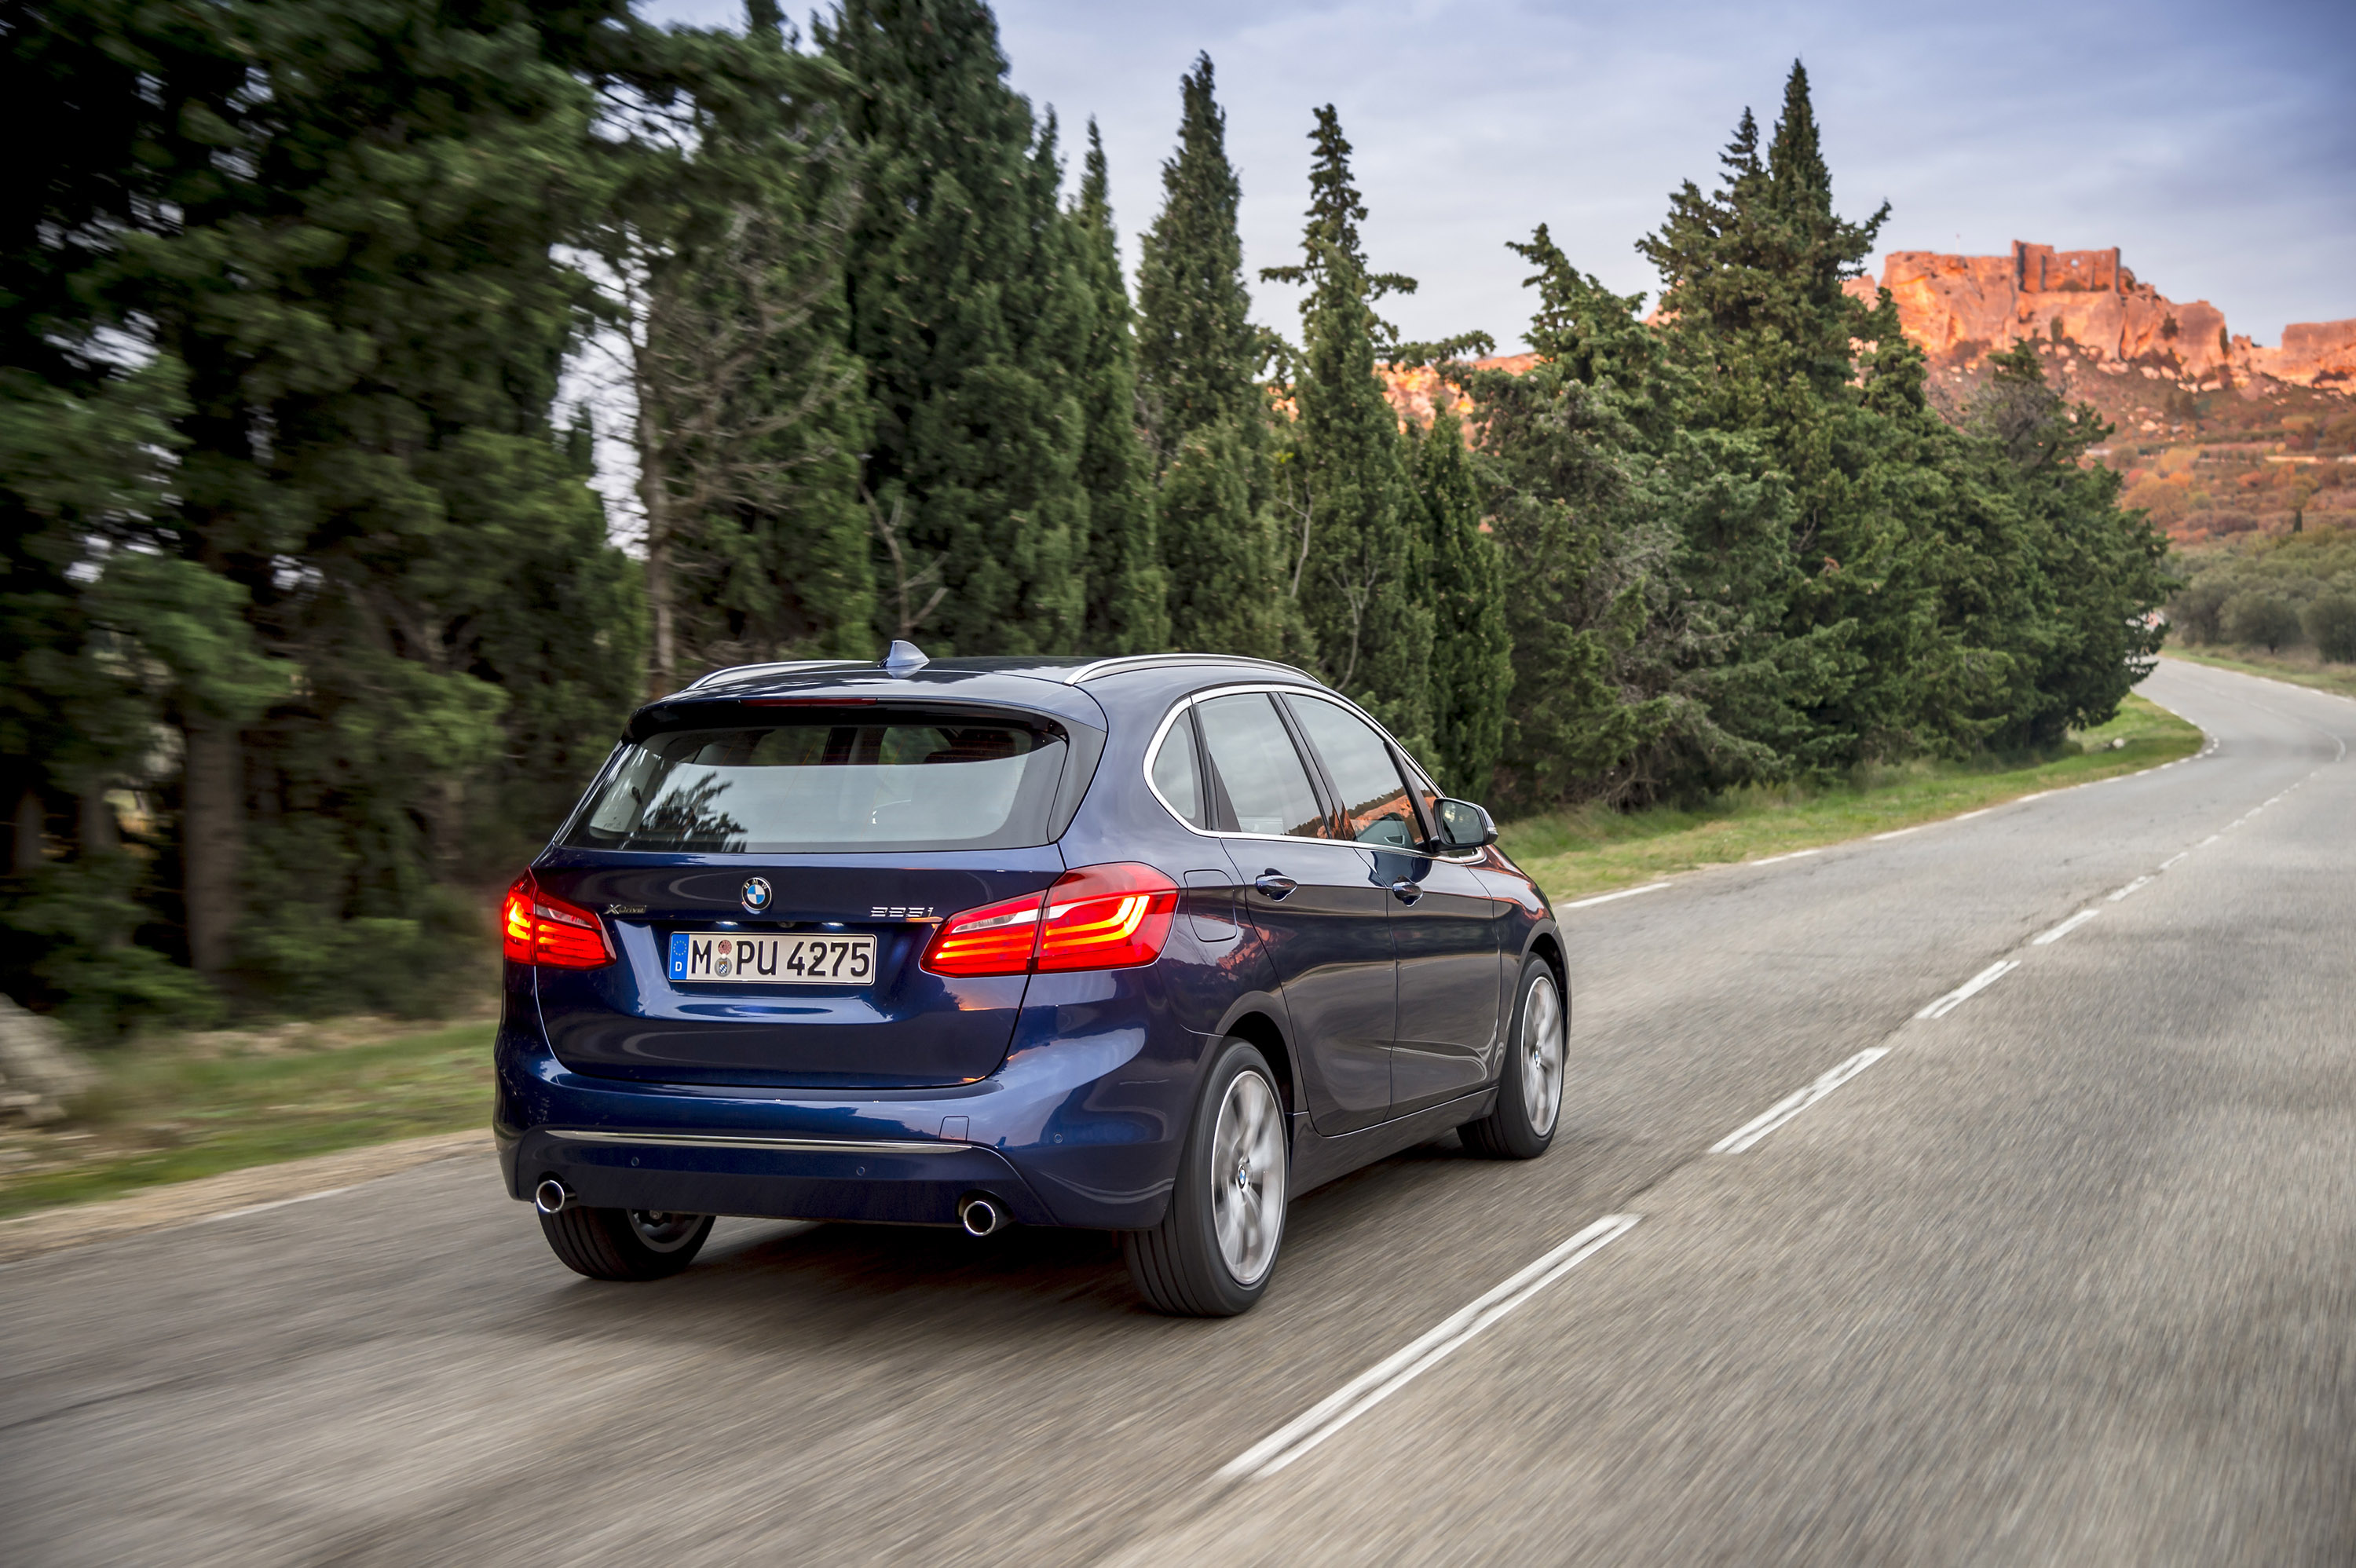 bmw xdrive technology featured in the new bmw 2 series active tourer. Black Bedroom Furniture Sets. Home Design Ideas